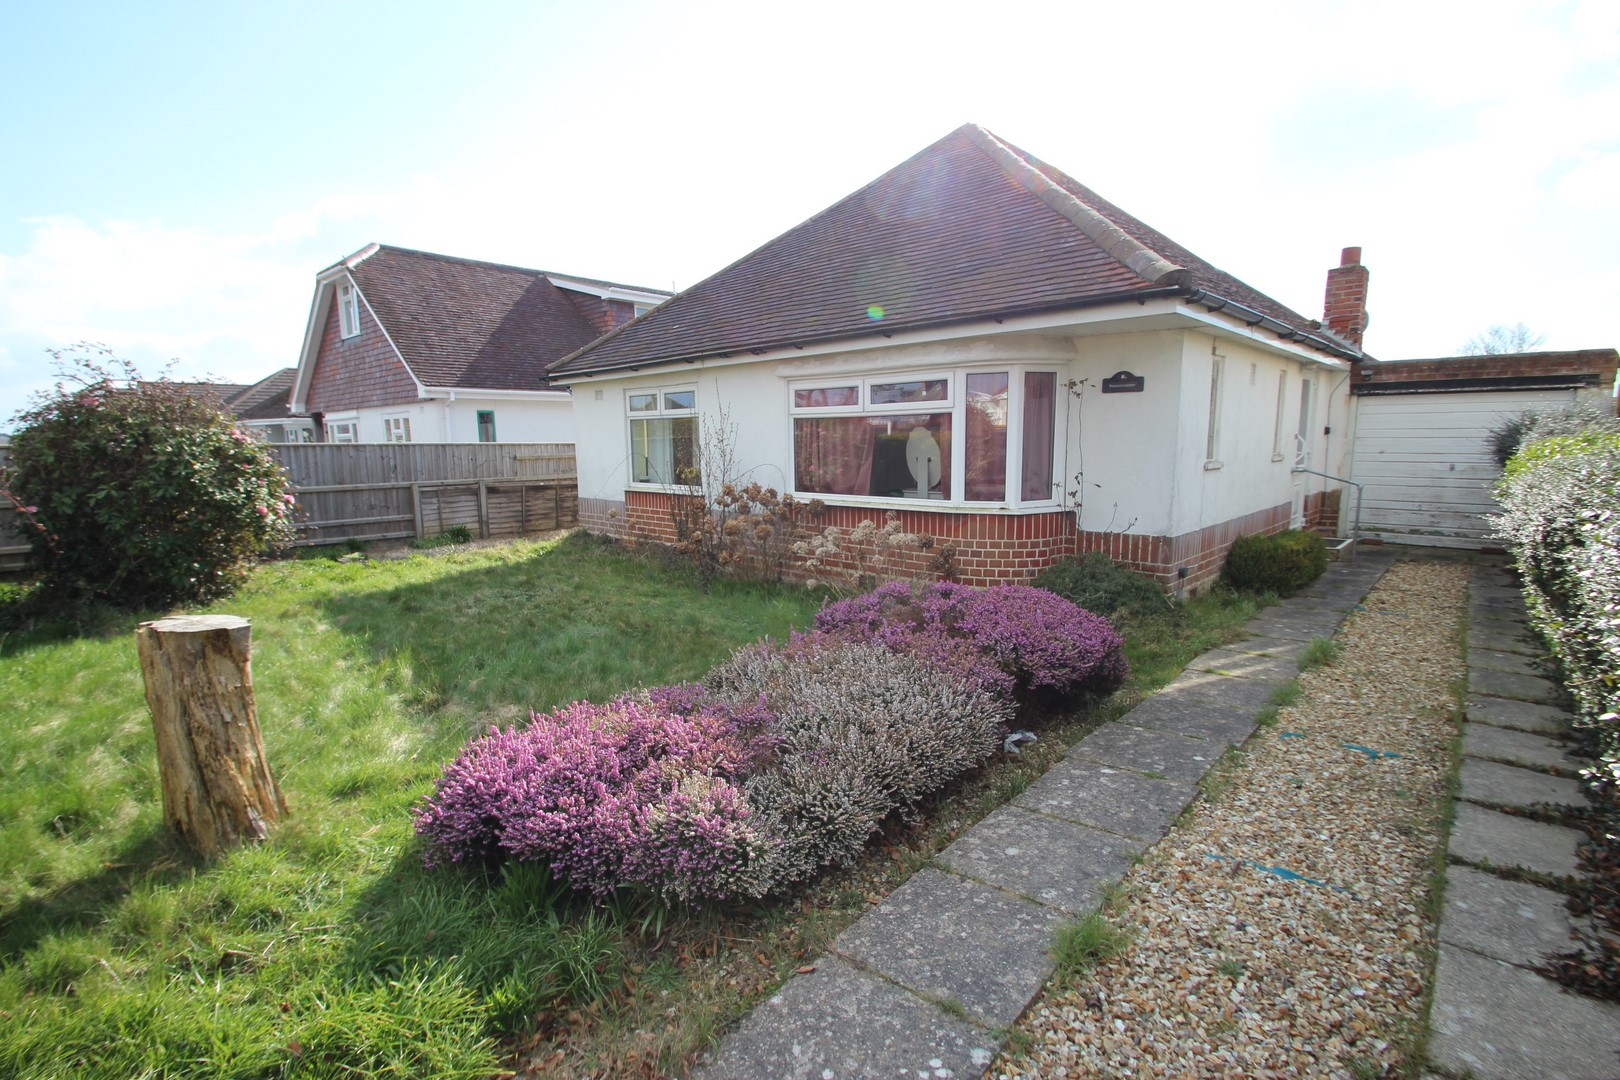 2 Bedroom Bungalow in Barton On Sea